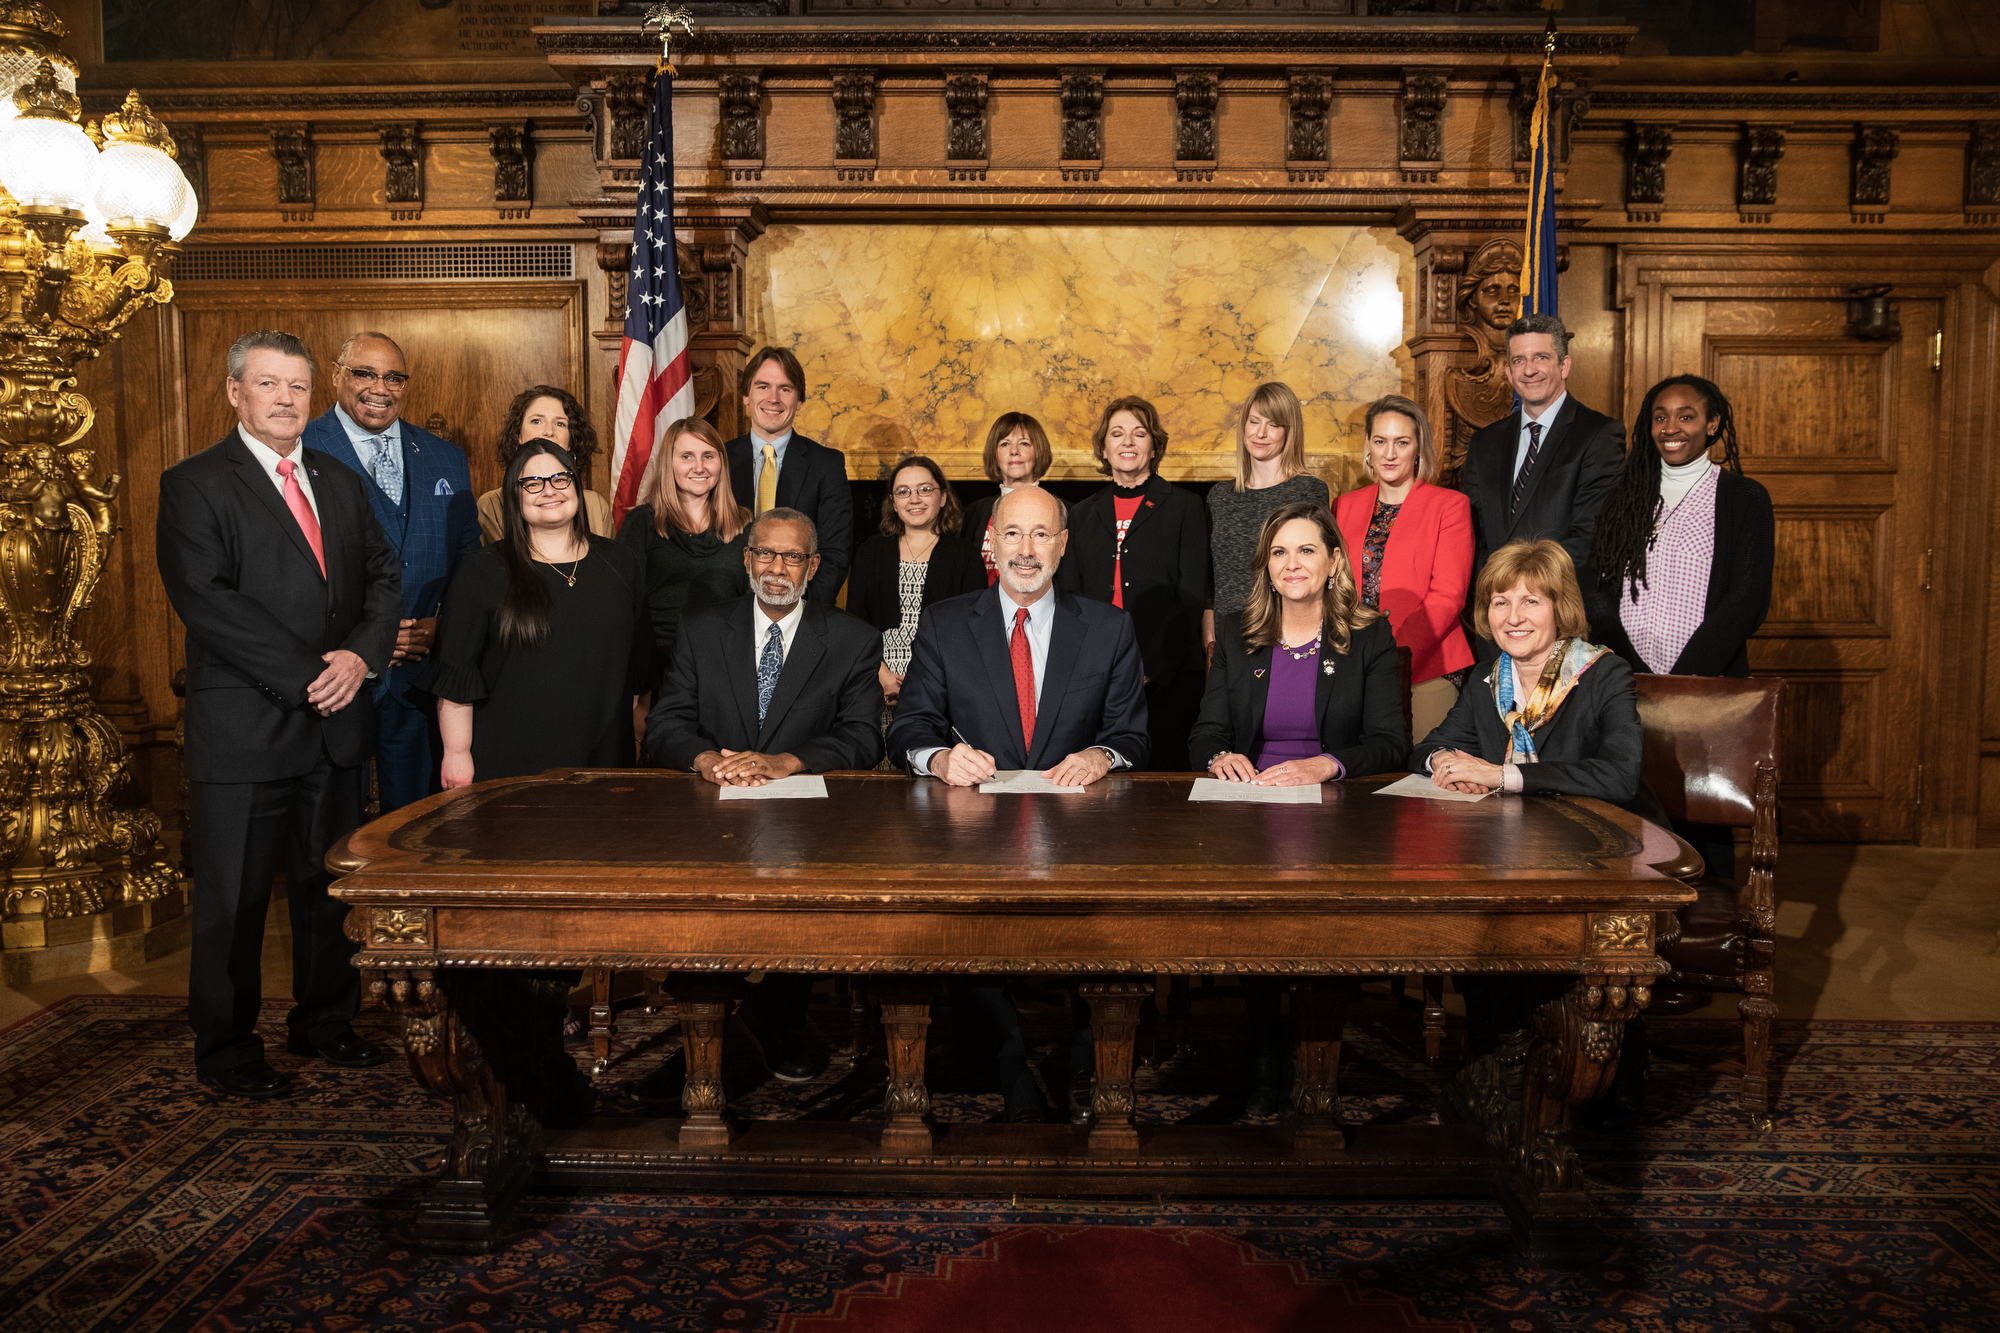 November 13, 2018: Governor Tom Wolf signs Senate Bill 919 - Domestic Violence in Public Housing Emergency Relocation.